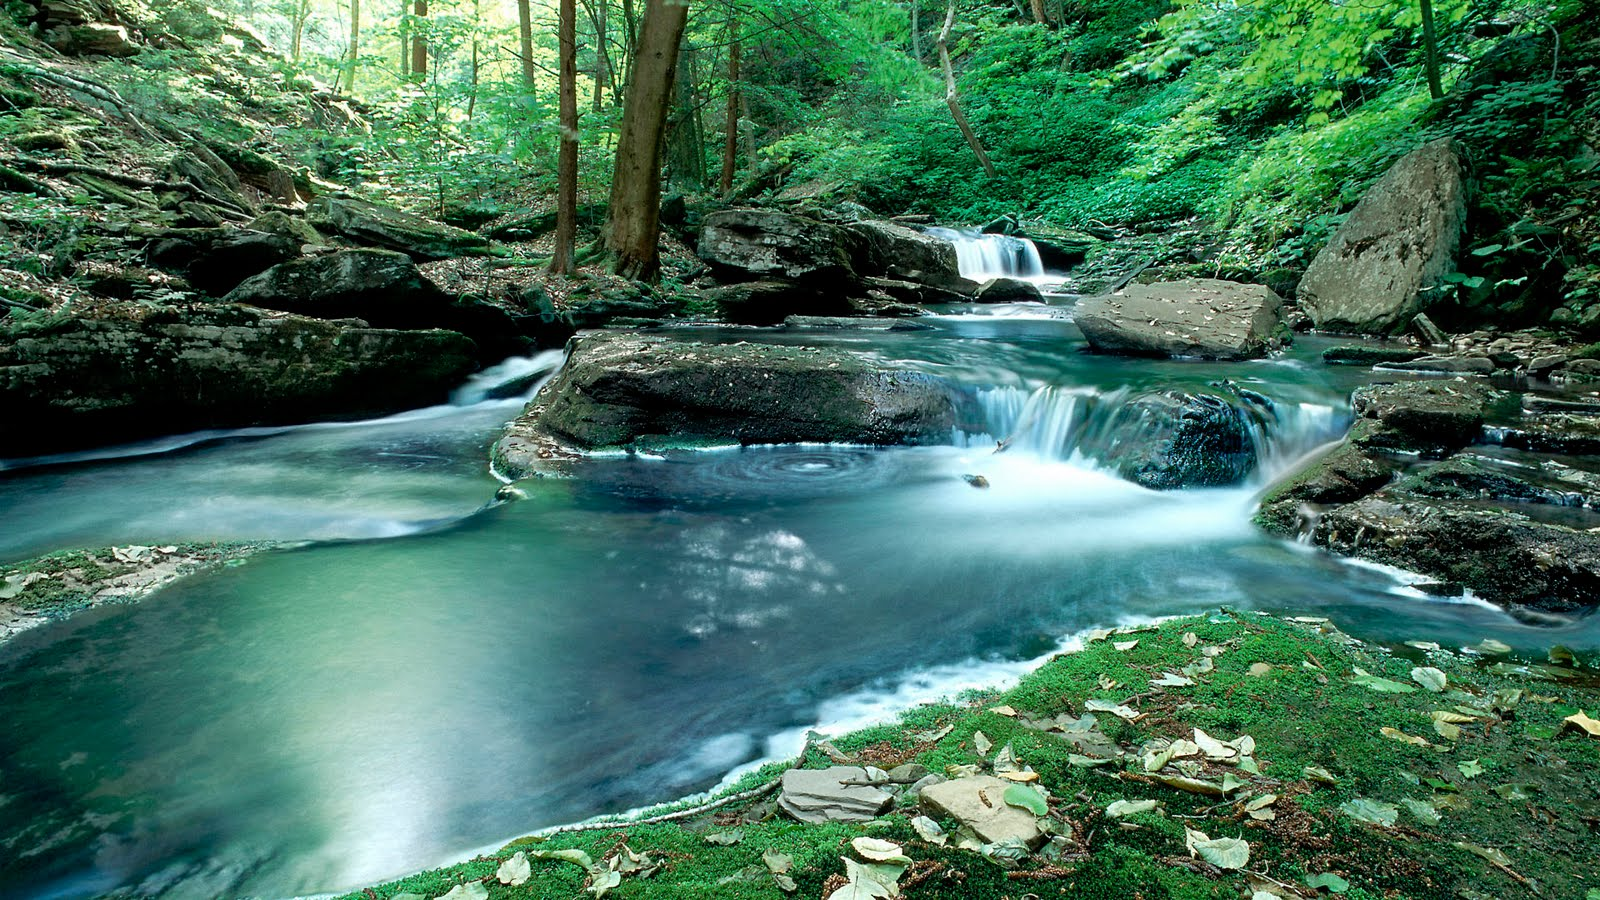 free desktop wallpaper nature,water resources,body of water,natural landscape,nature,stream